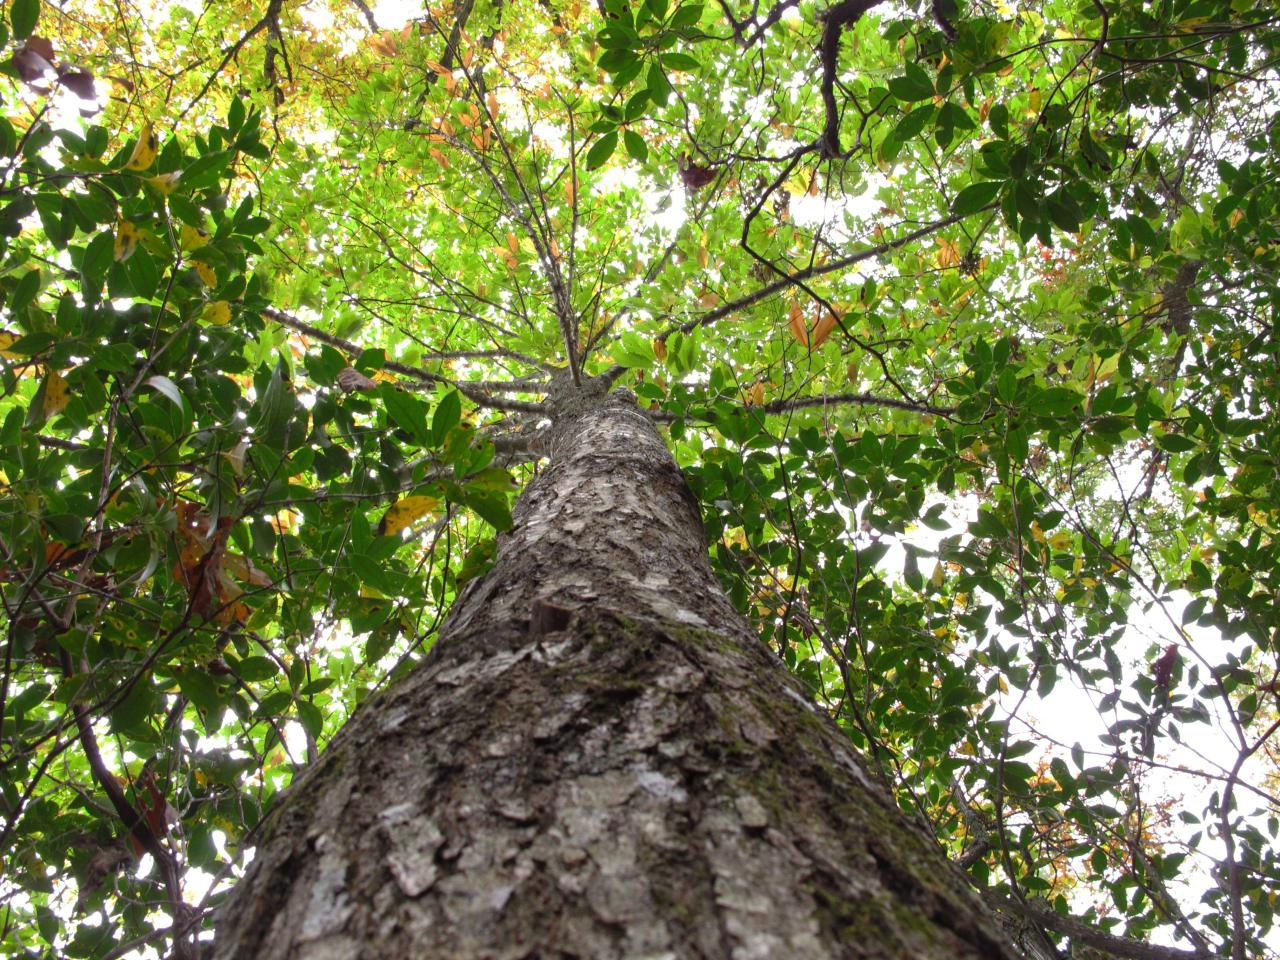 American chestnut trees were once among the most majestic hardwood trees in the eastern deciduous forests, many reaching 80 to ...